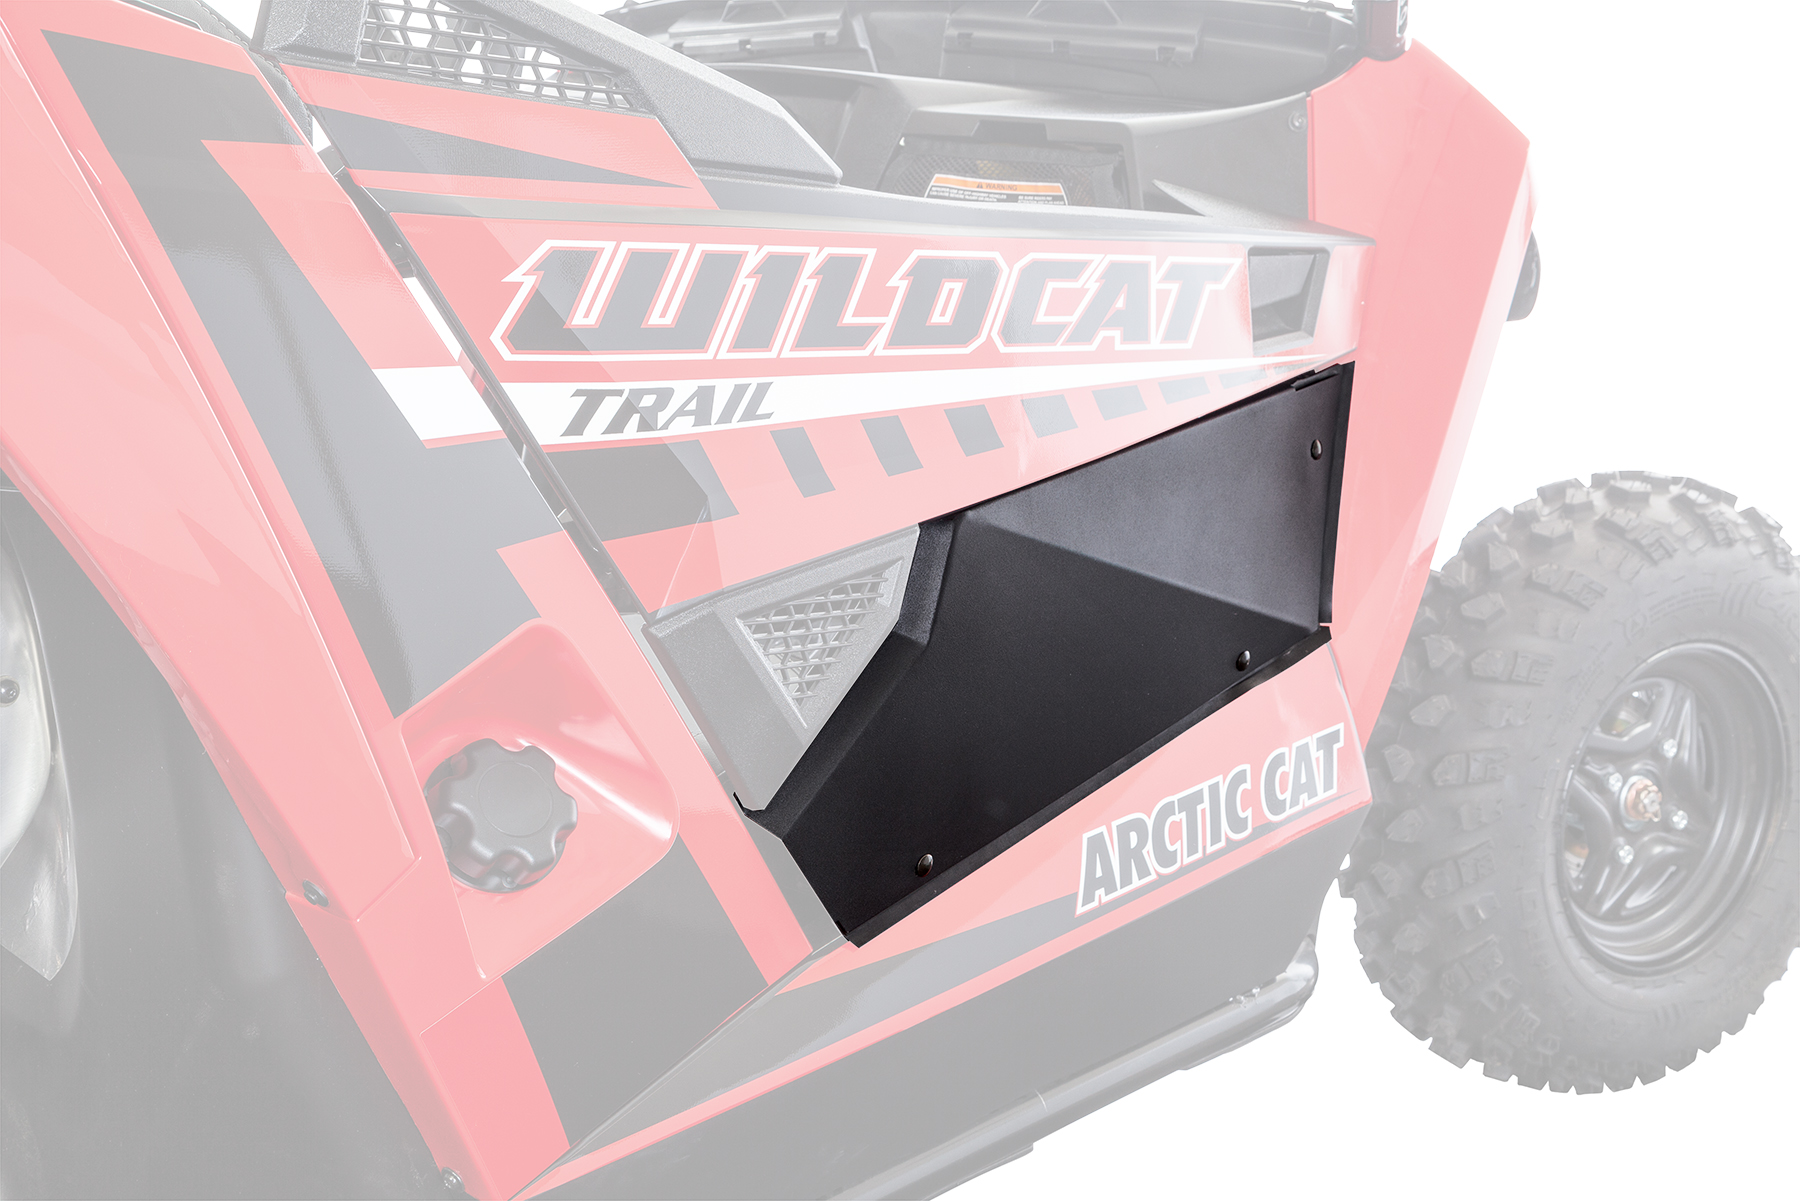 Watch likewise Standard Plow Kit Atv furthermore Door Extensions moreover Arctic Cat Wildcat Trail Spare Tire Carrier additionally 318170 550 Efi Wiring. on arctic cat wildcat plow